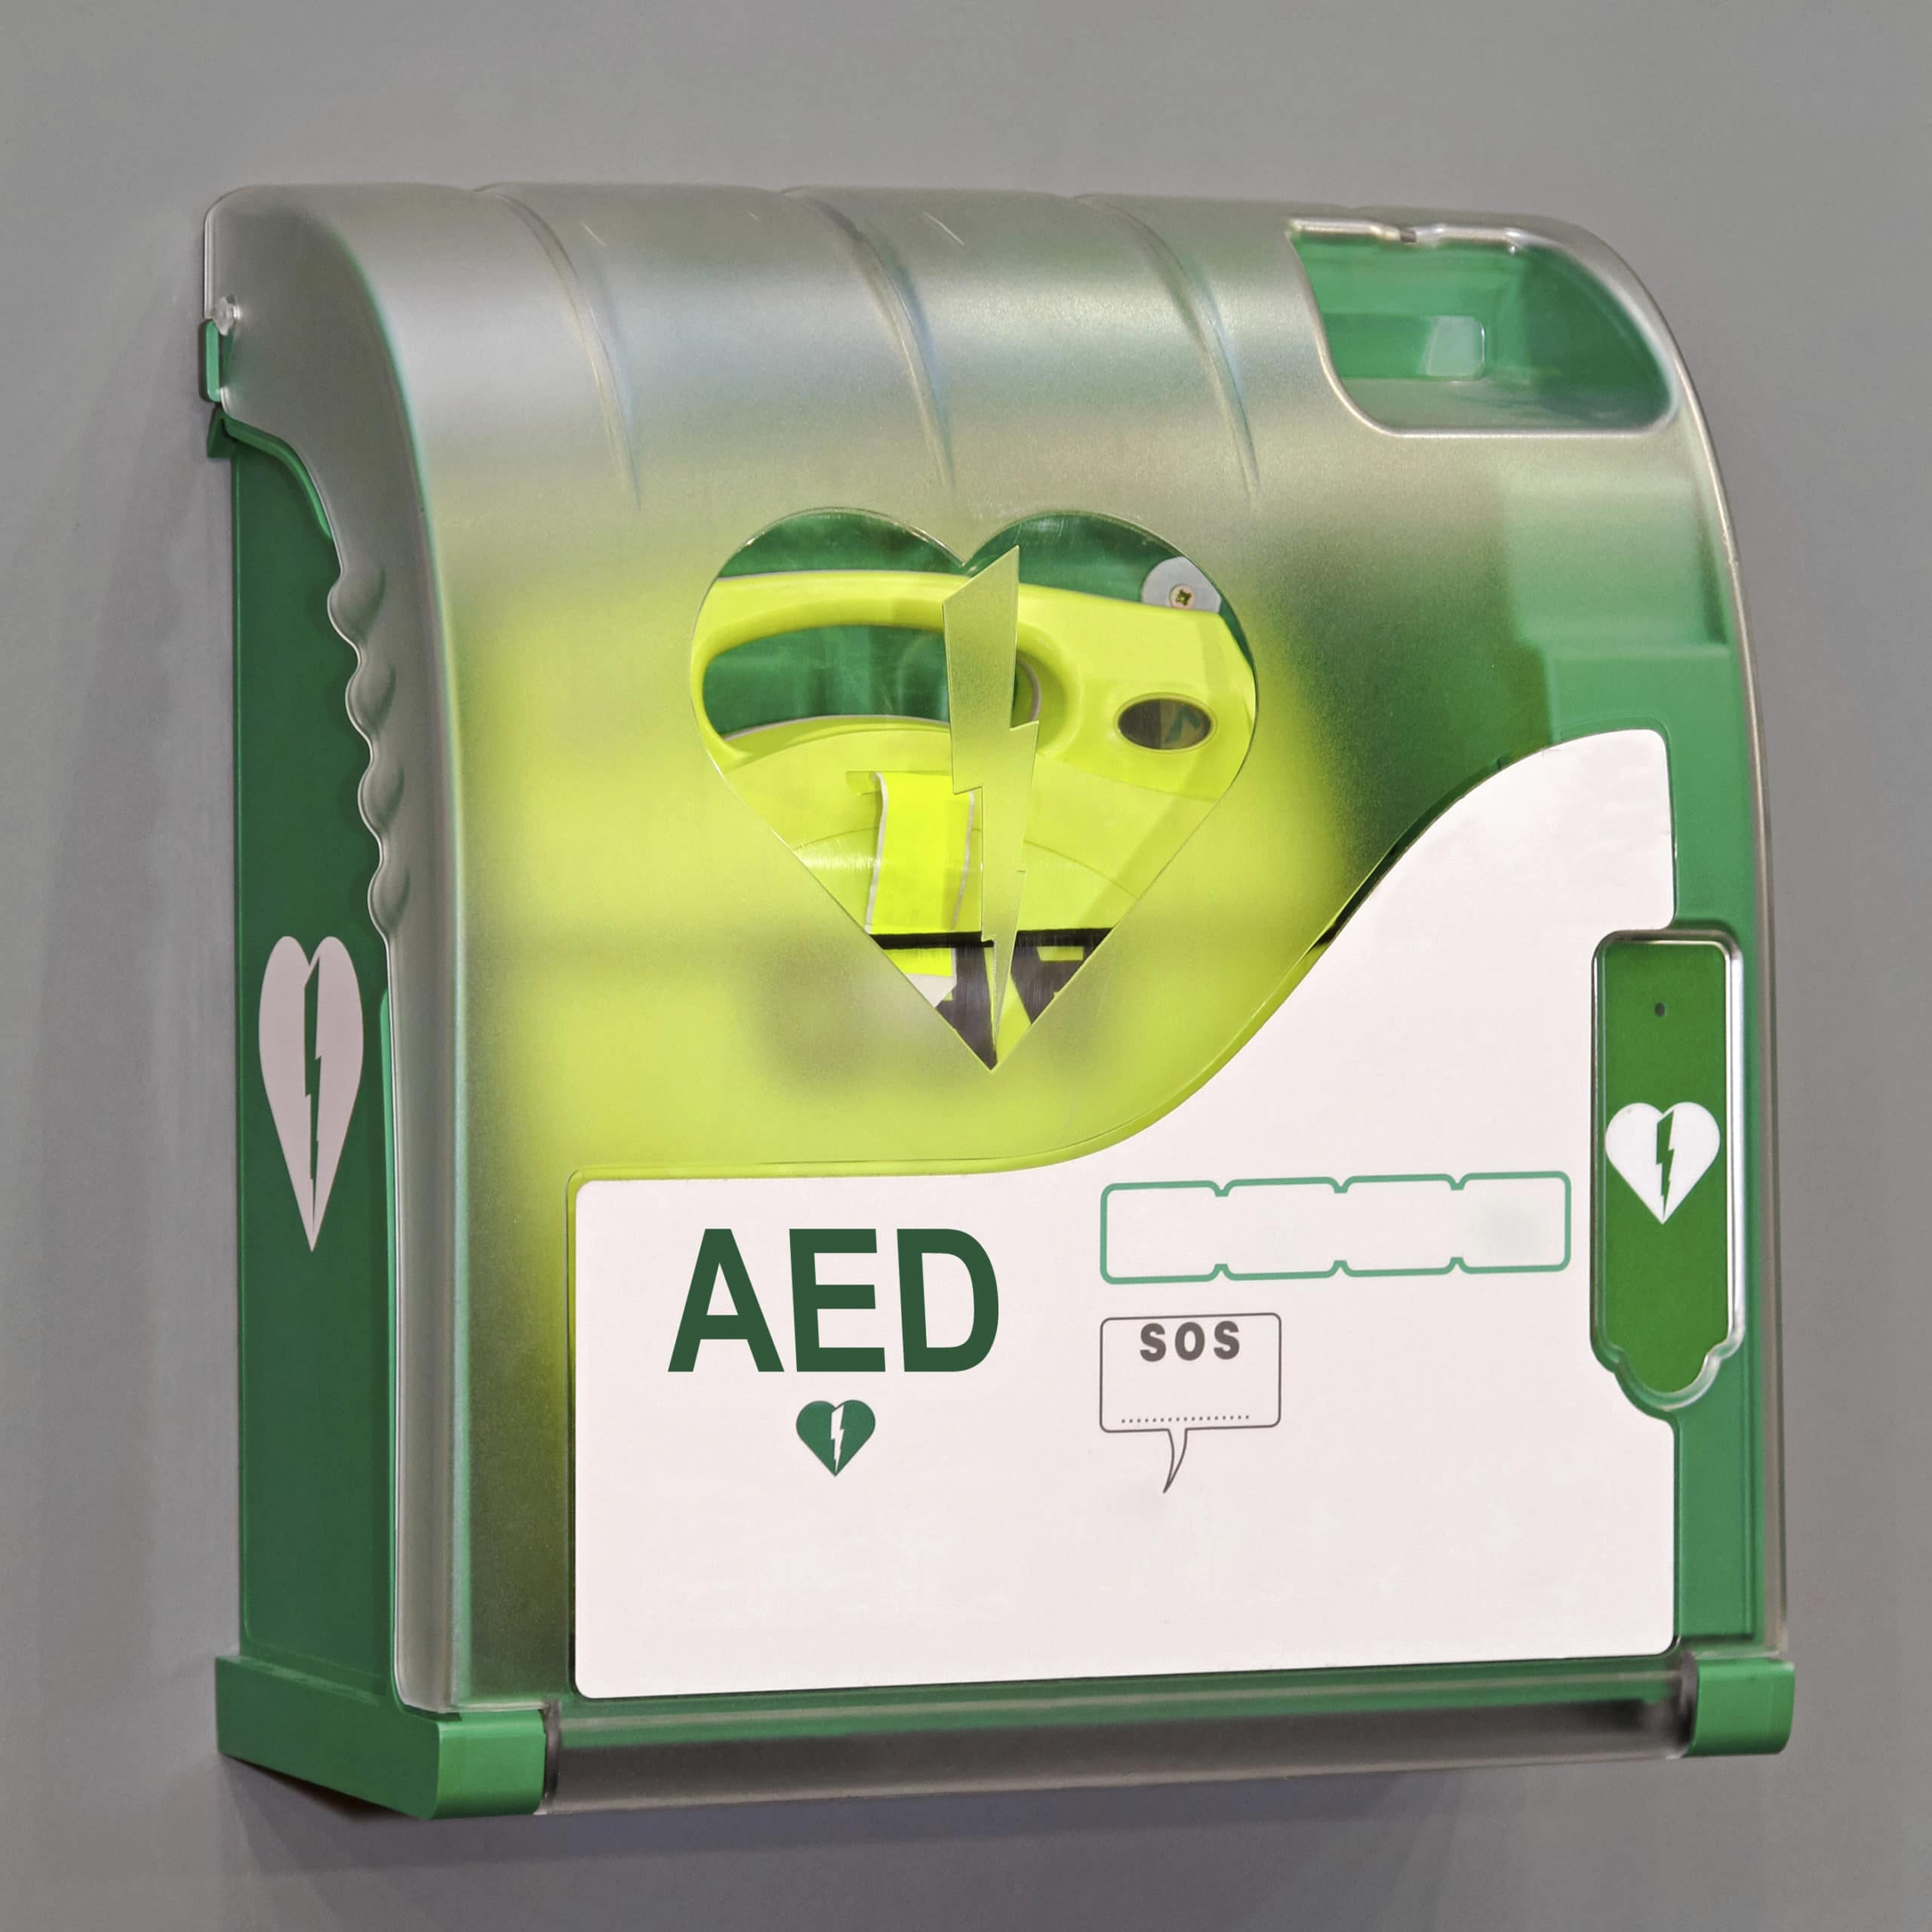 All about defibrillators (AEDs) - what they are and how to use them